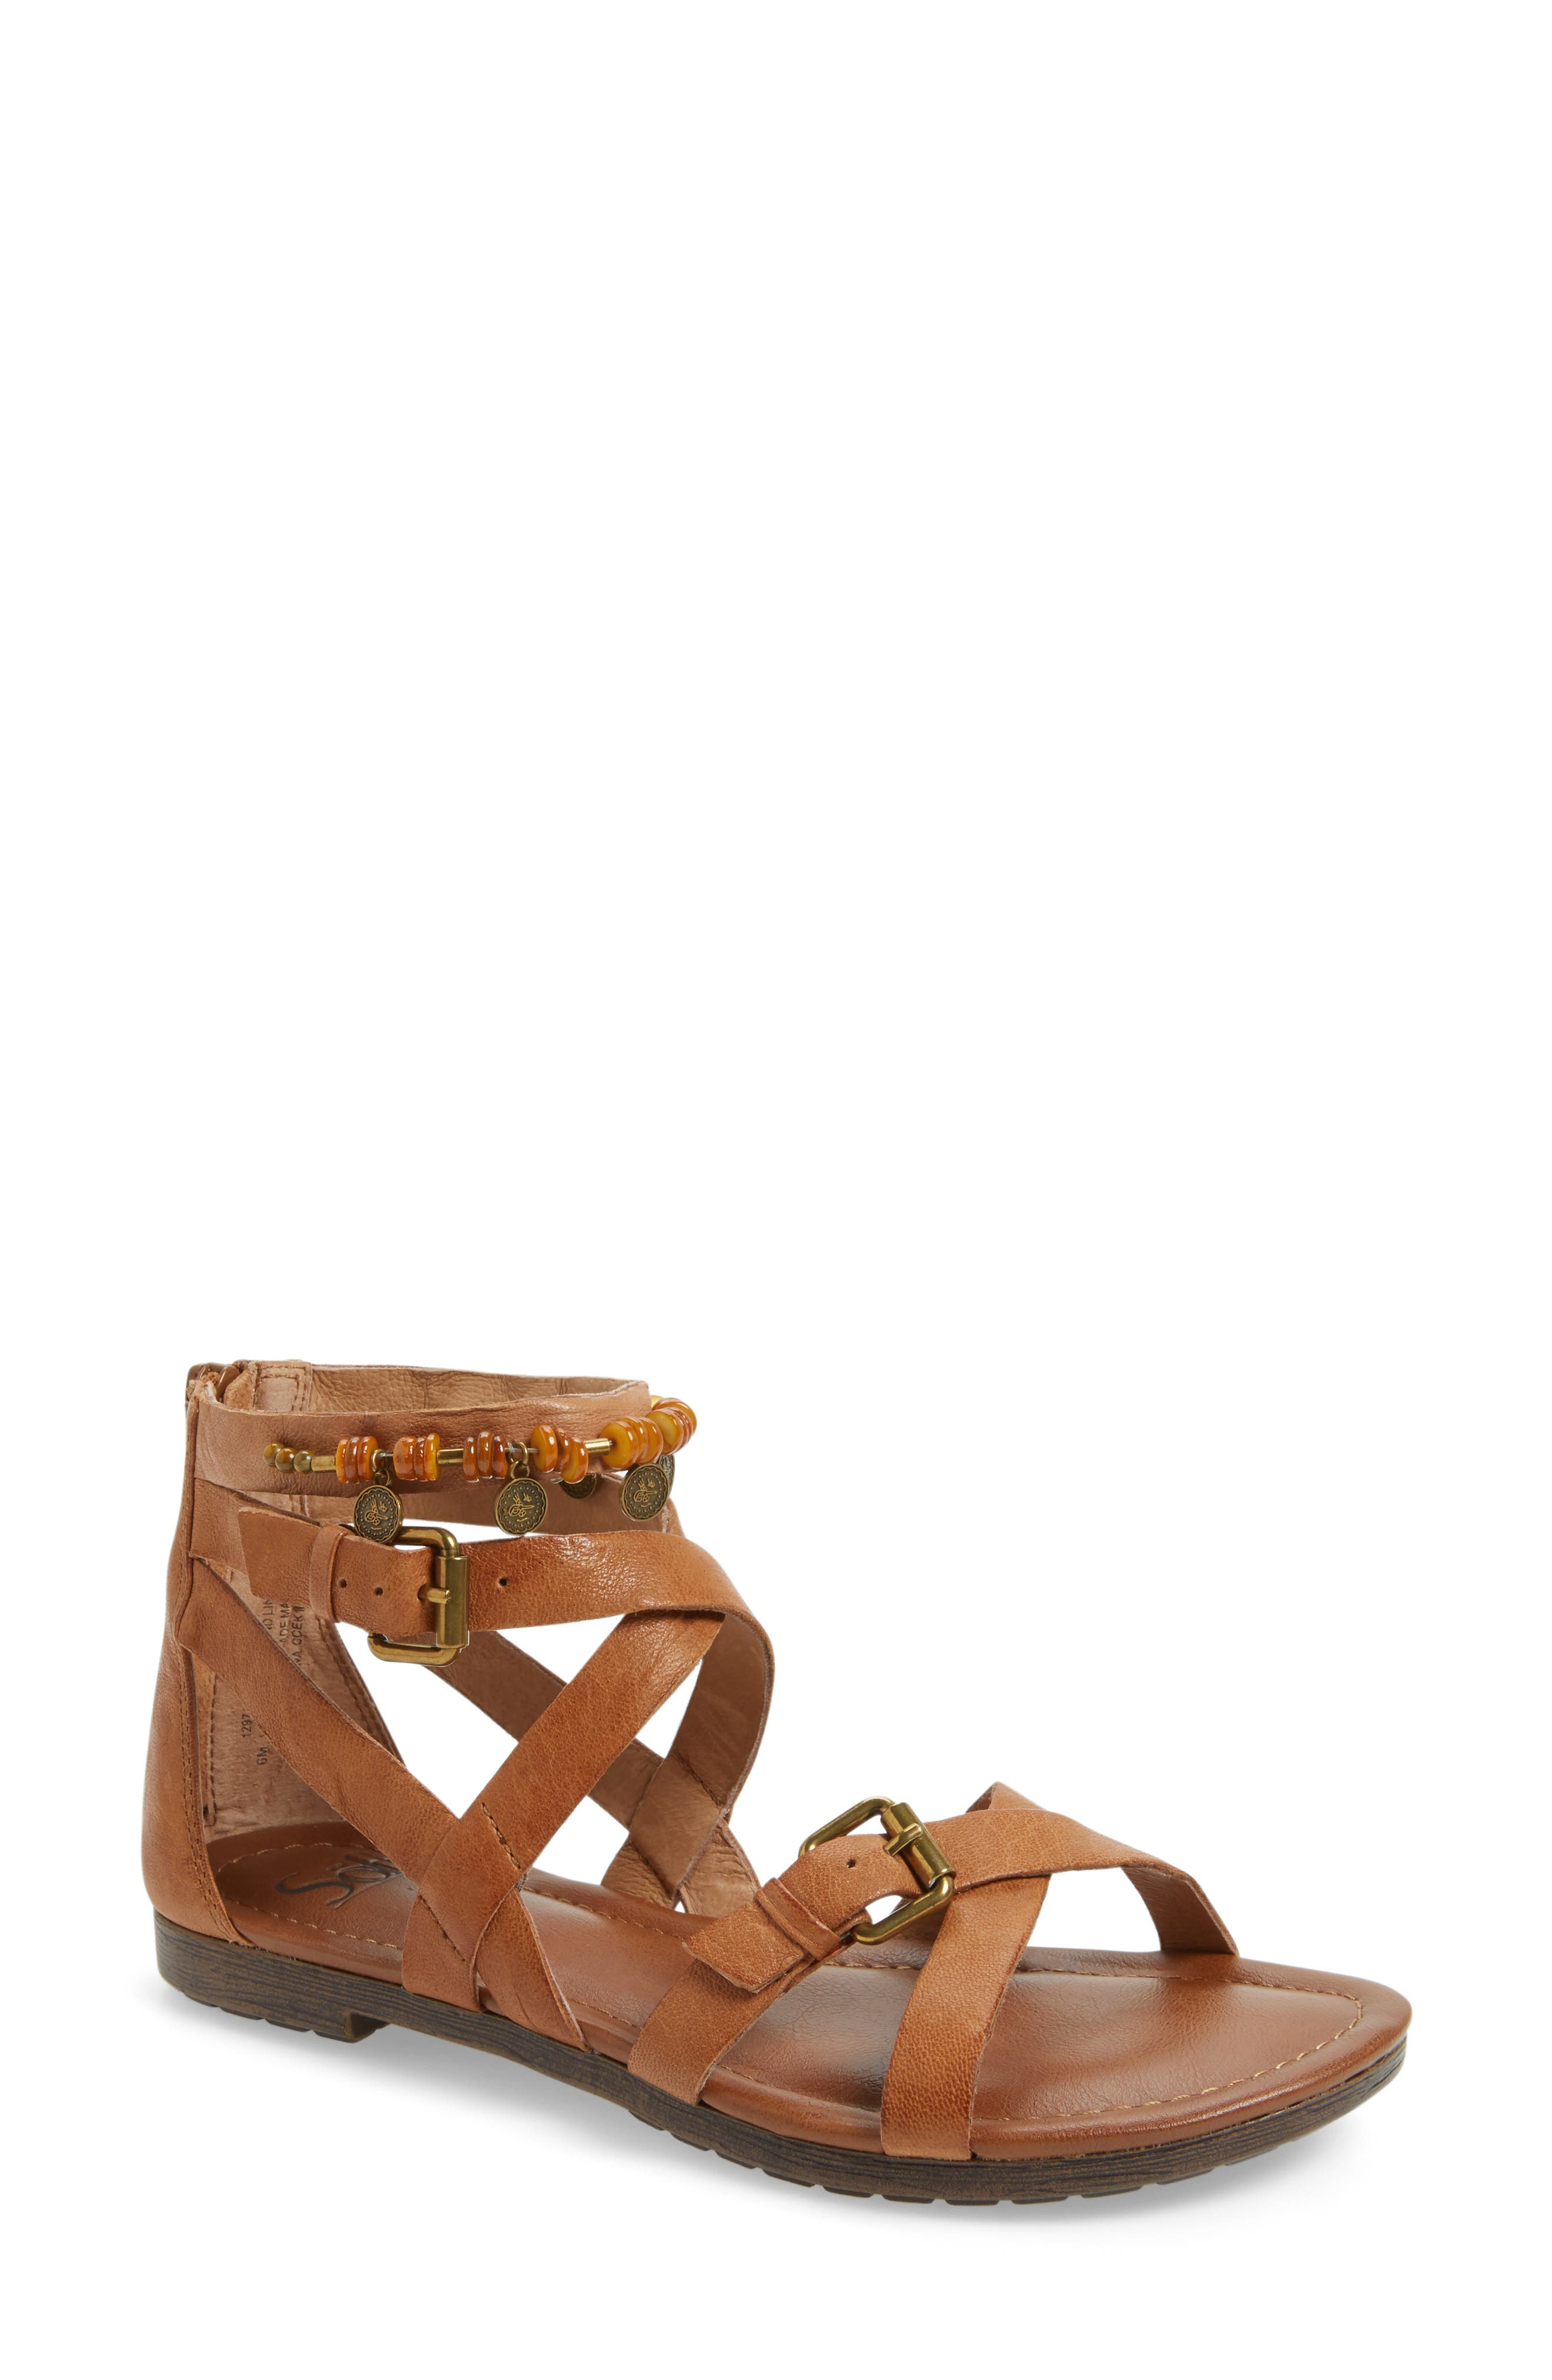 Boca Caged Sandal,                         Main,                         color, Luggage Leather